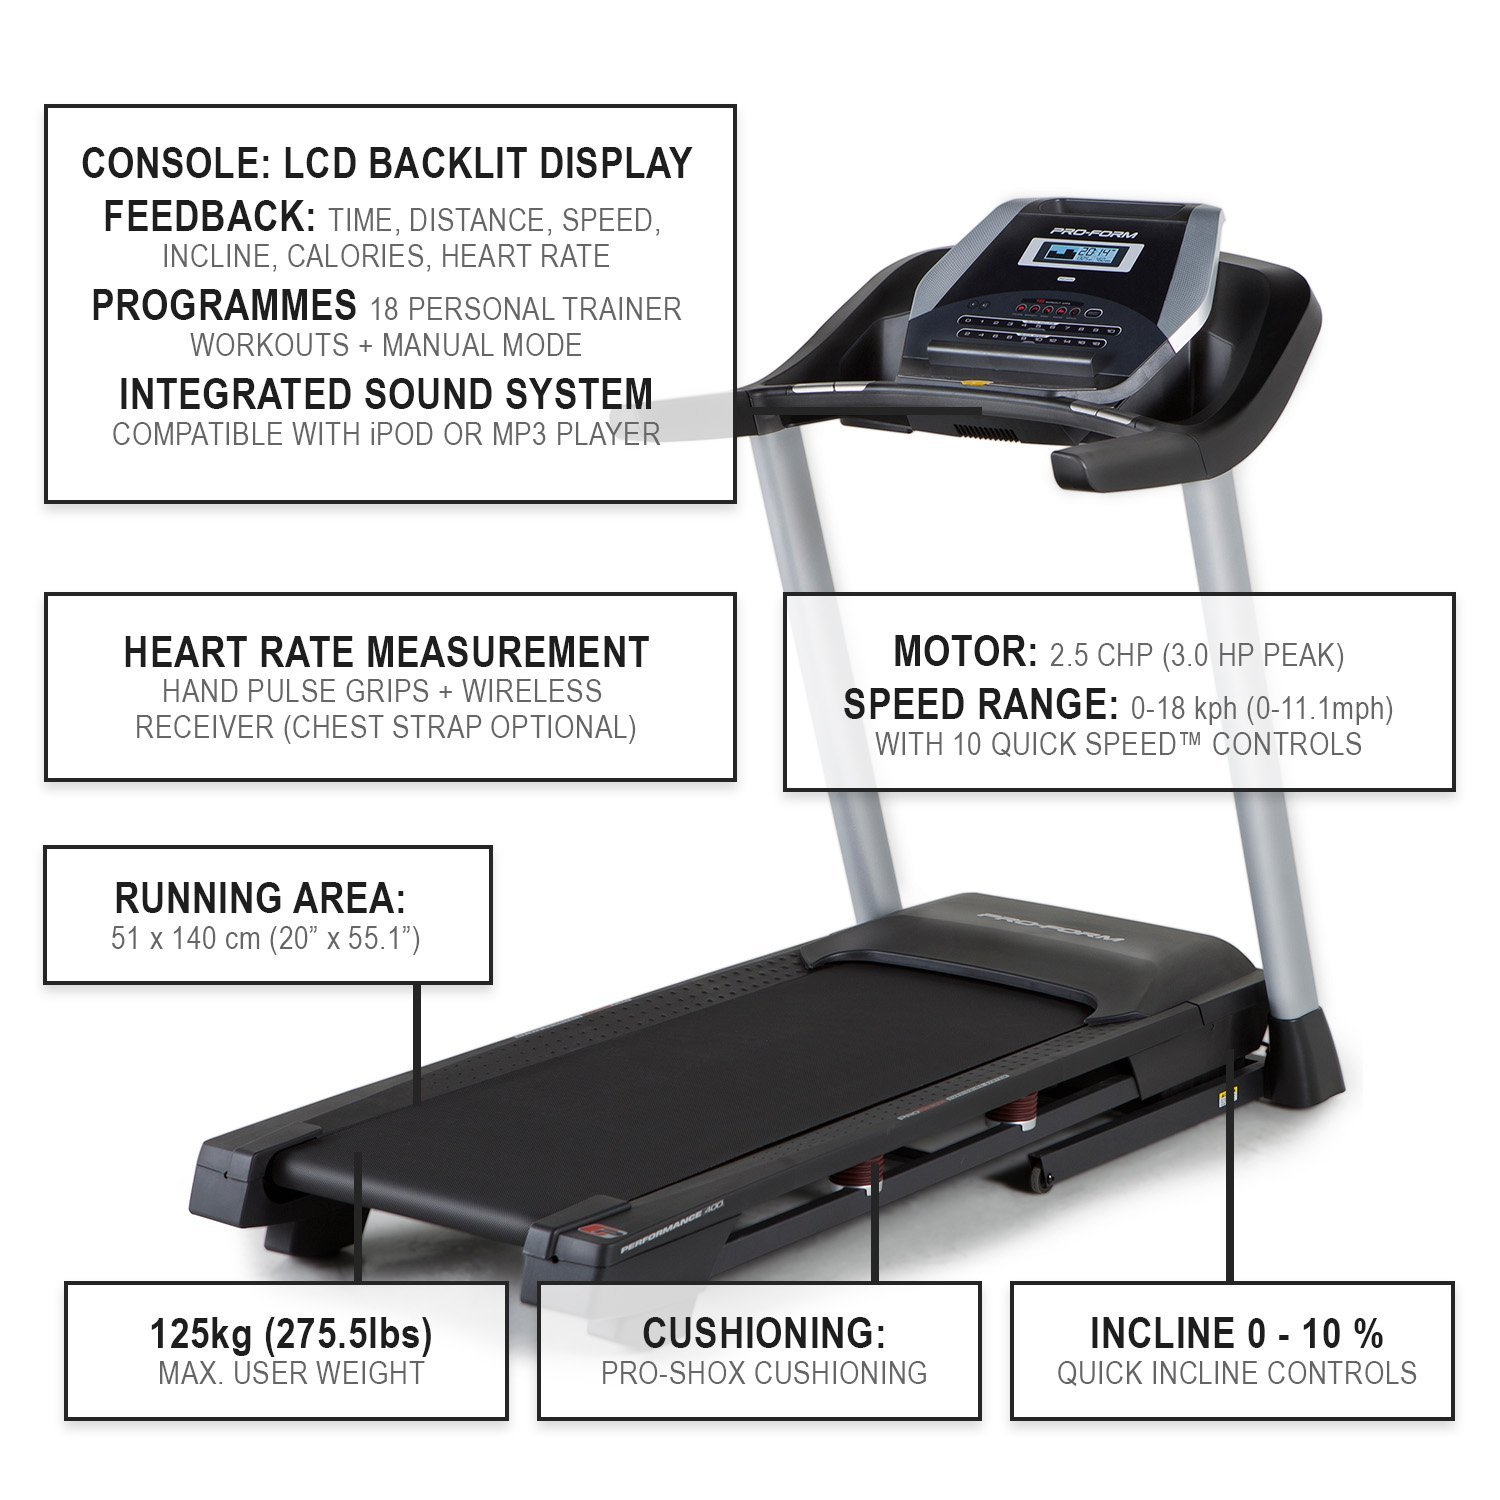 Proform Endurance M7 Treadmill Review